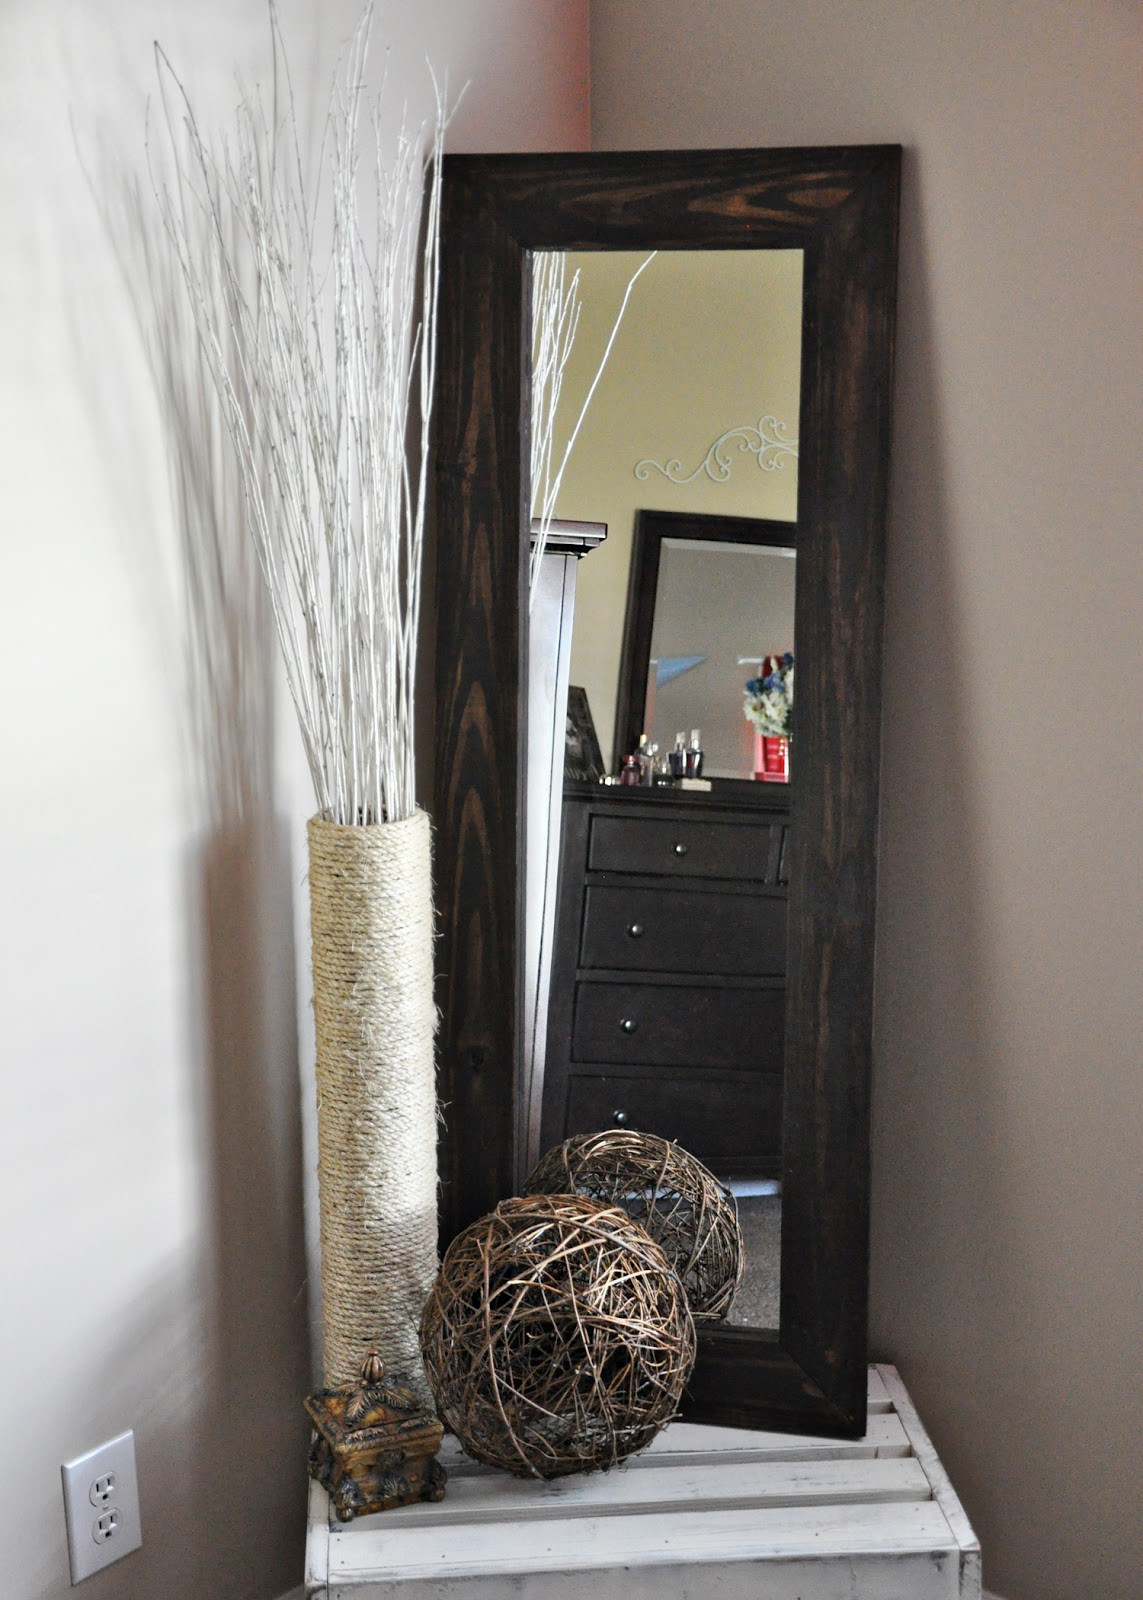 Best ideas about DIY Floor Mirror . Save or Pin me & j the everday DIY Full Length Mirror & Floor Vase Now.